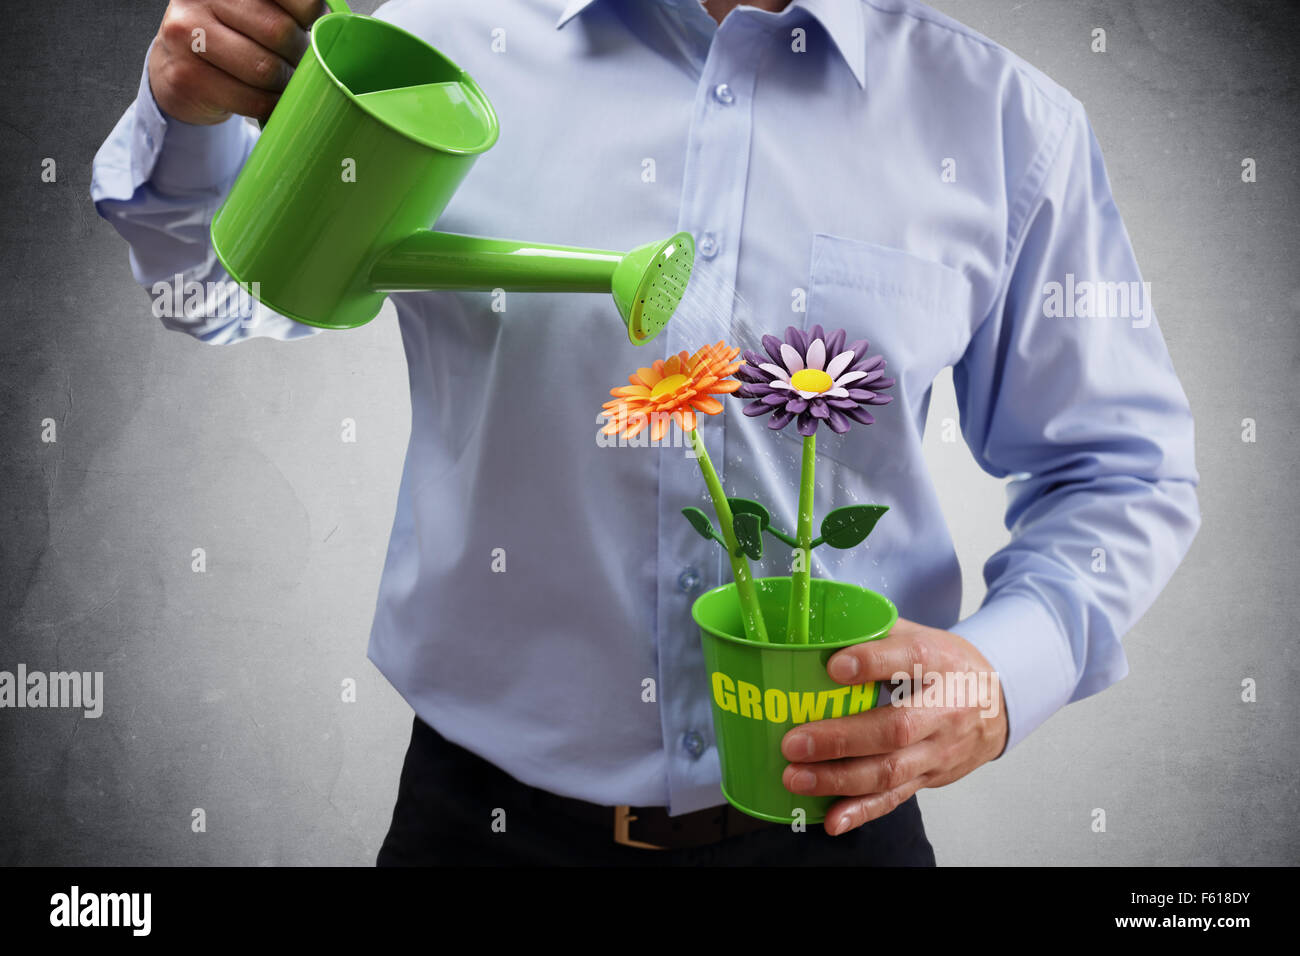 Investment and growth businessman with watering can investing in business and making money concept - Stock Image